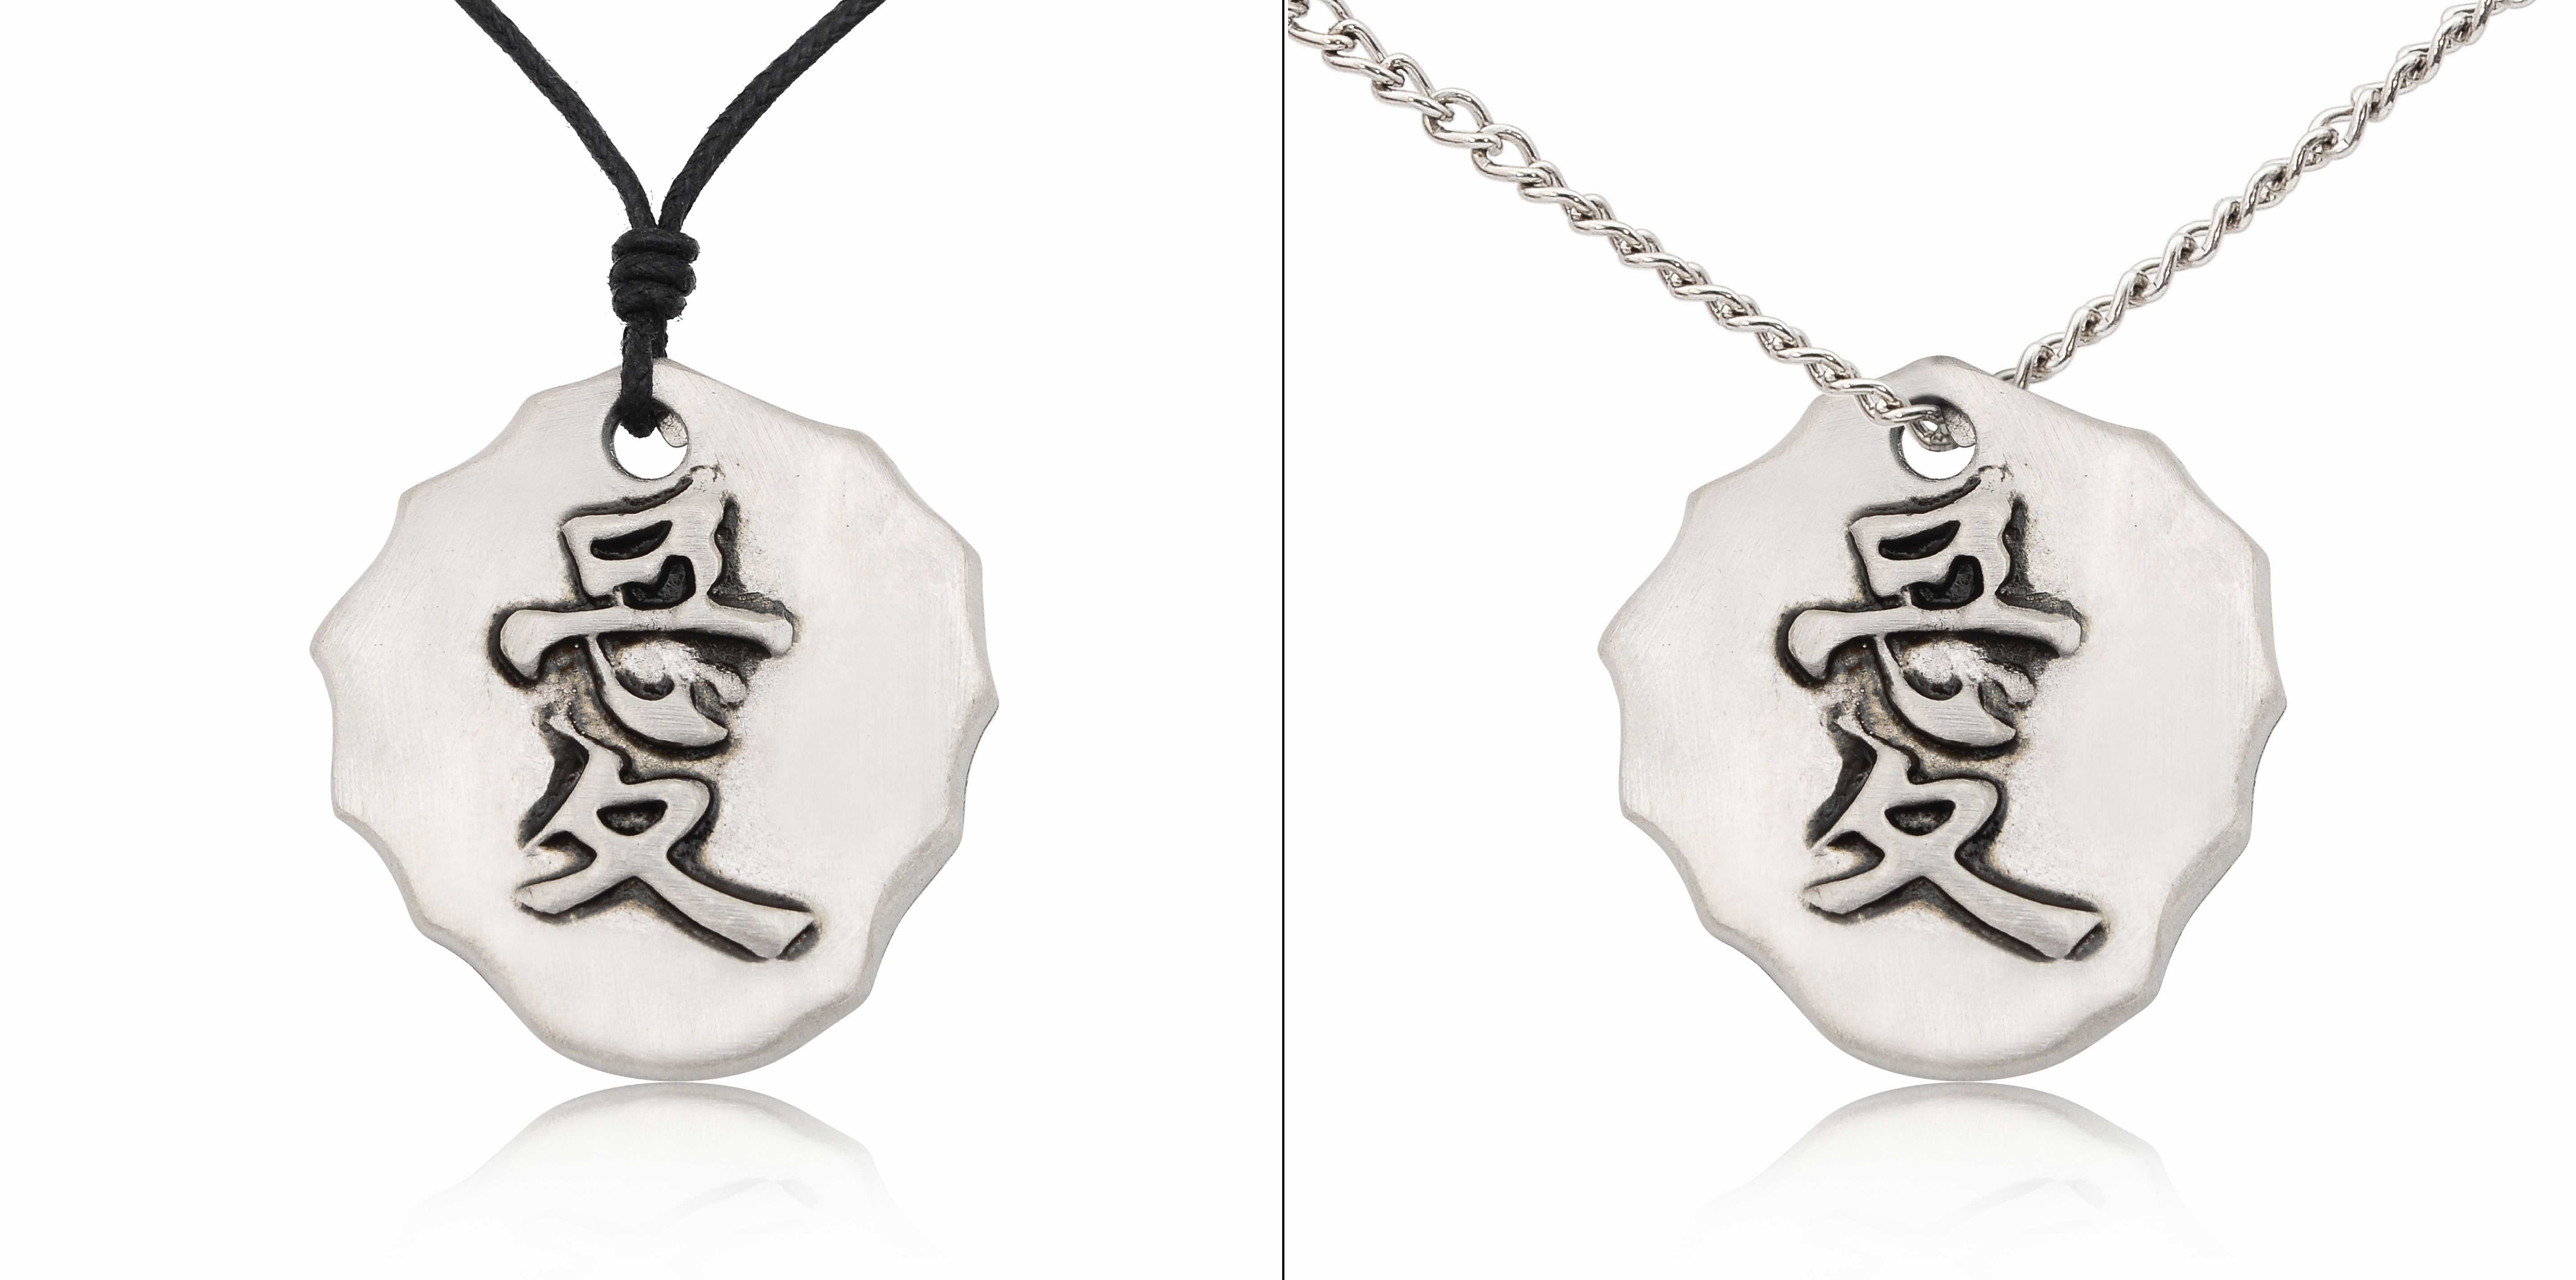 Chinese word love silver pewter charm necklace pendant jewelry ebay chinese word love silver pewter charm necklace pendant aloadofball Choice Image